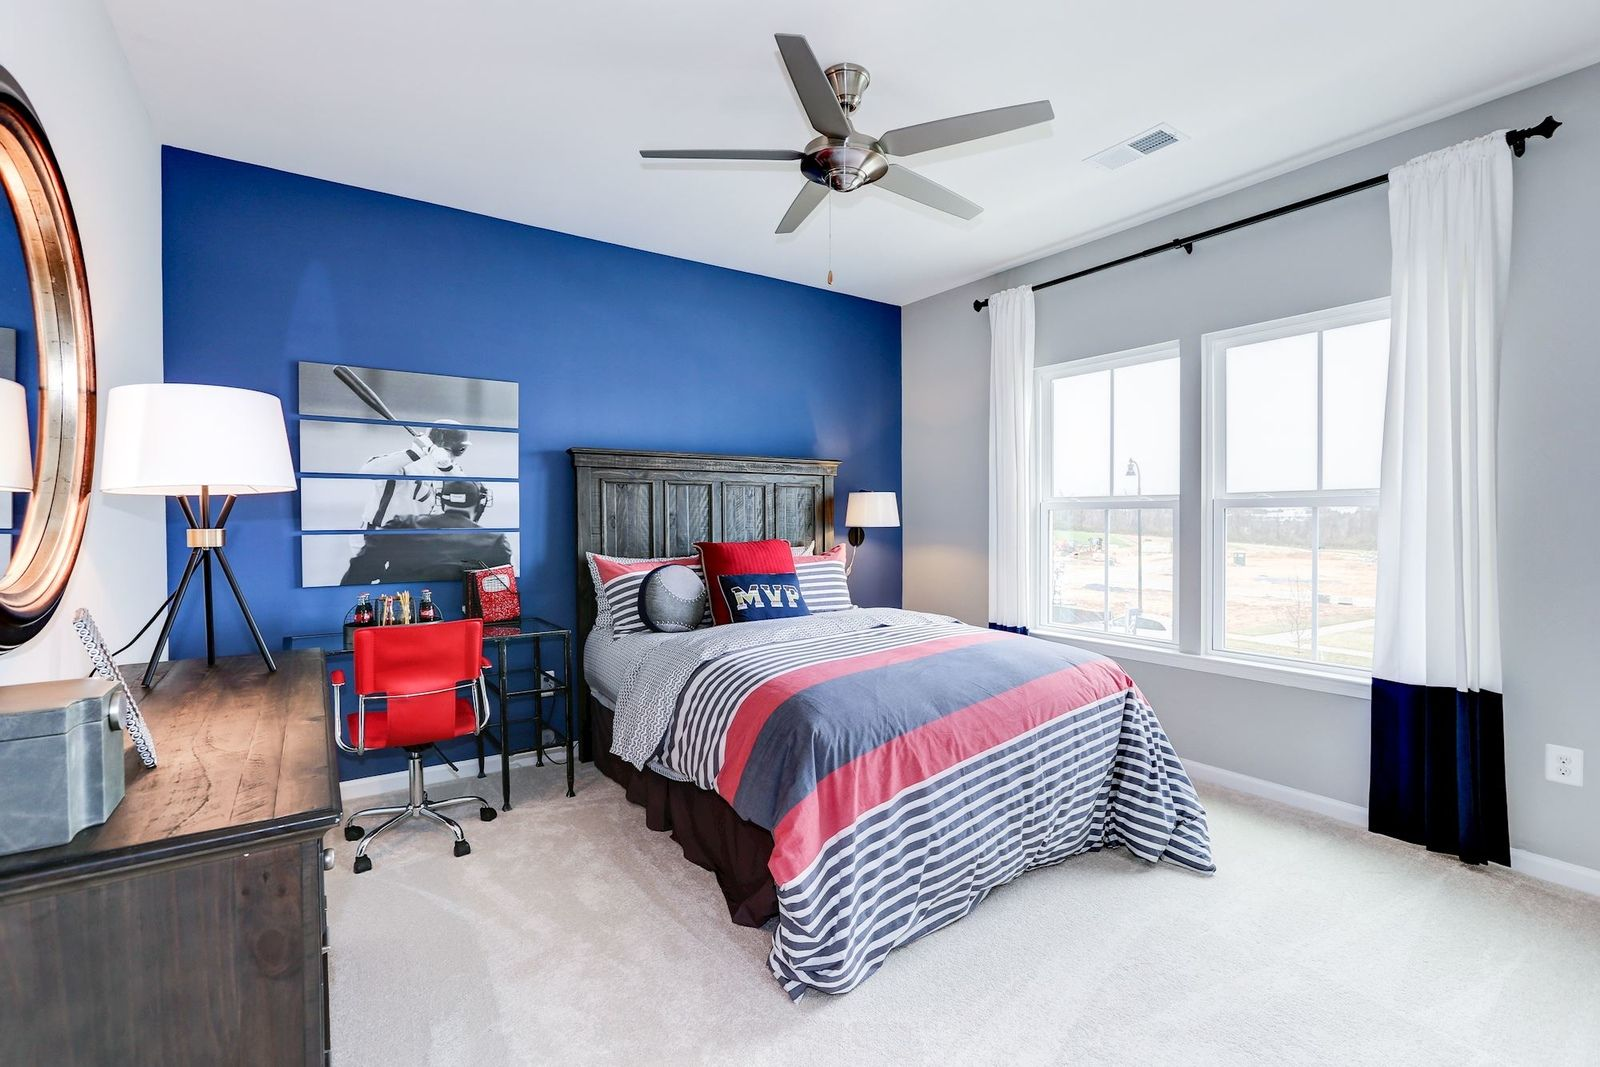 Bedroom featured in the Salinger By Ryan Homes in Washington, VA